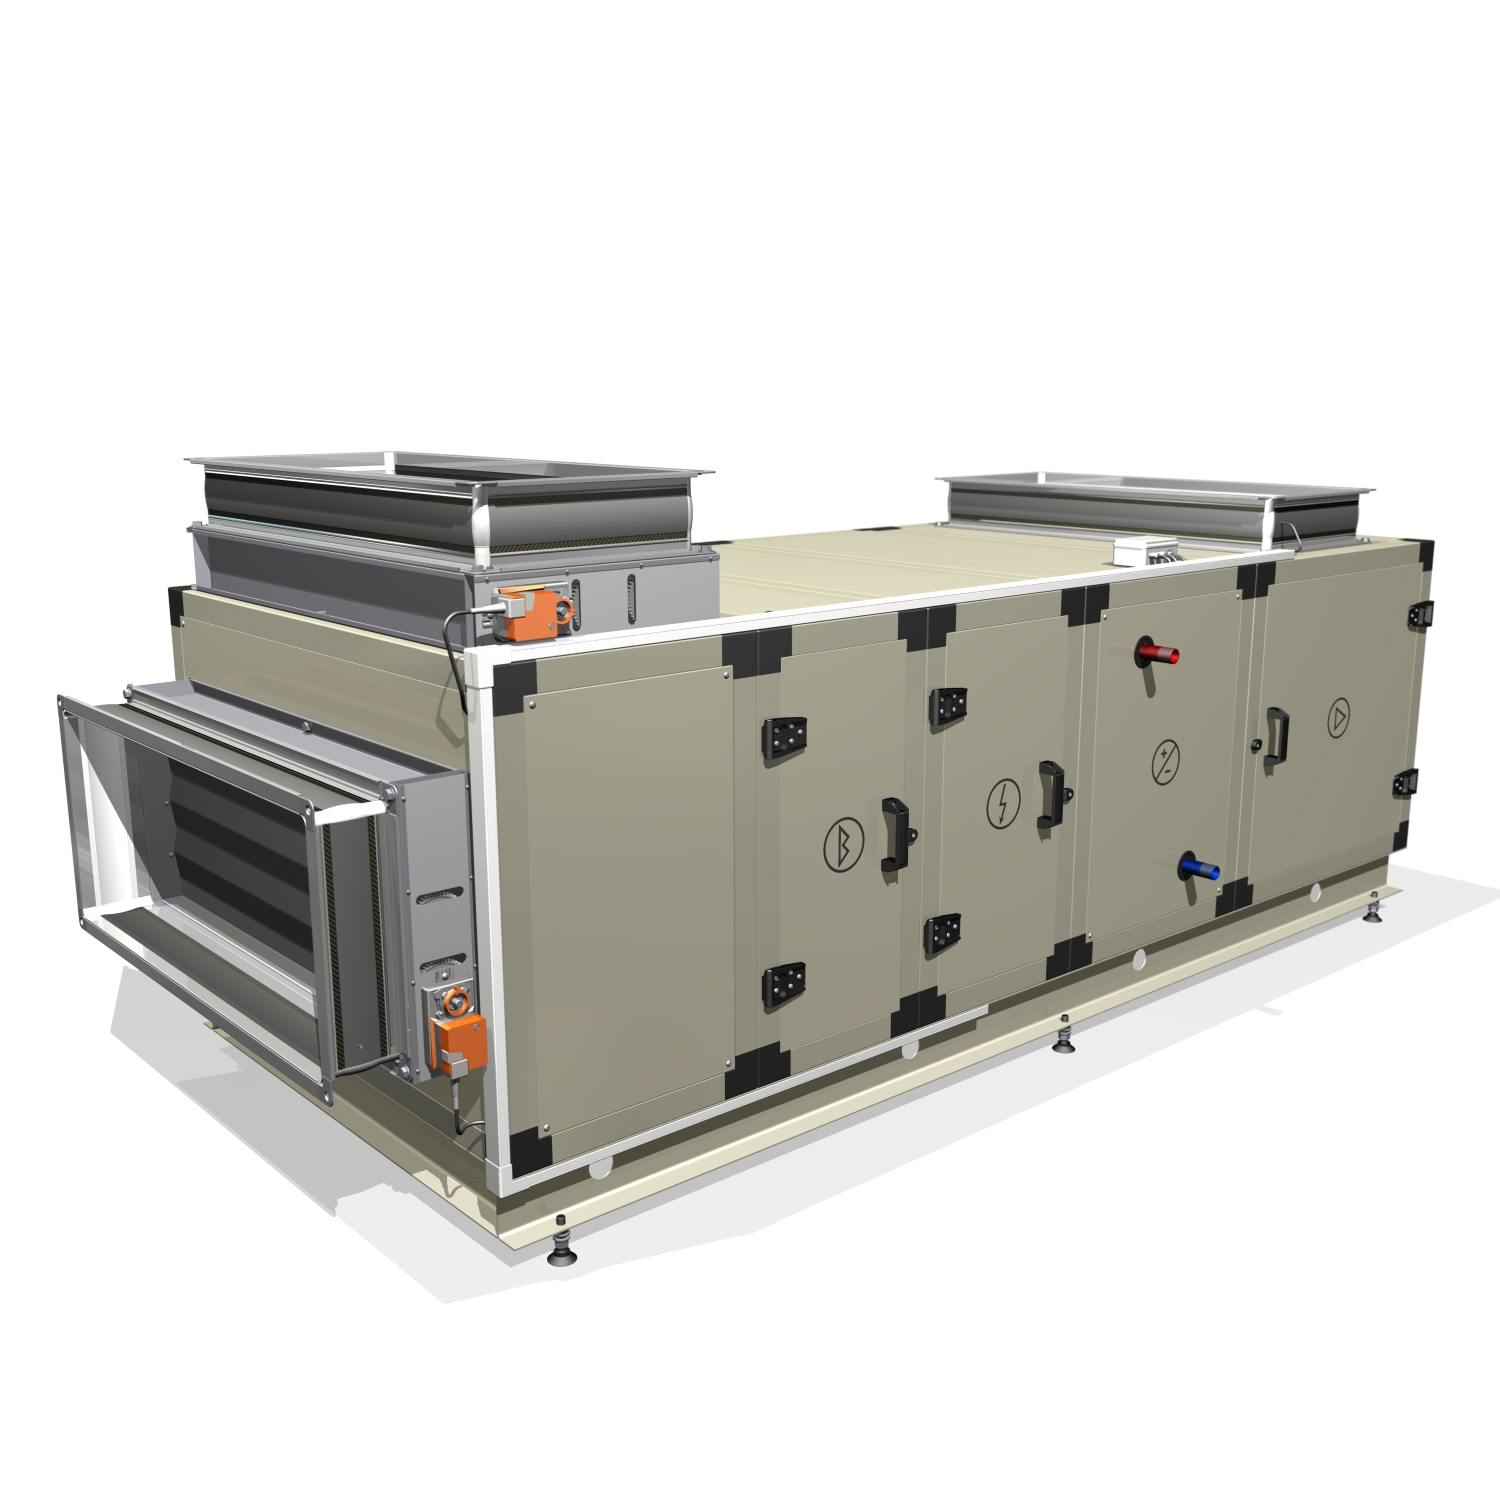 air handling units condensing units cabin units self contained units #A85023